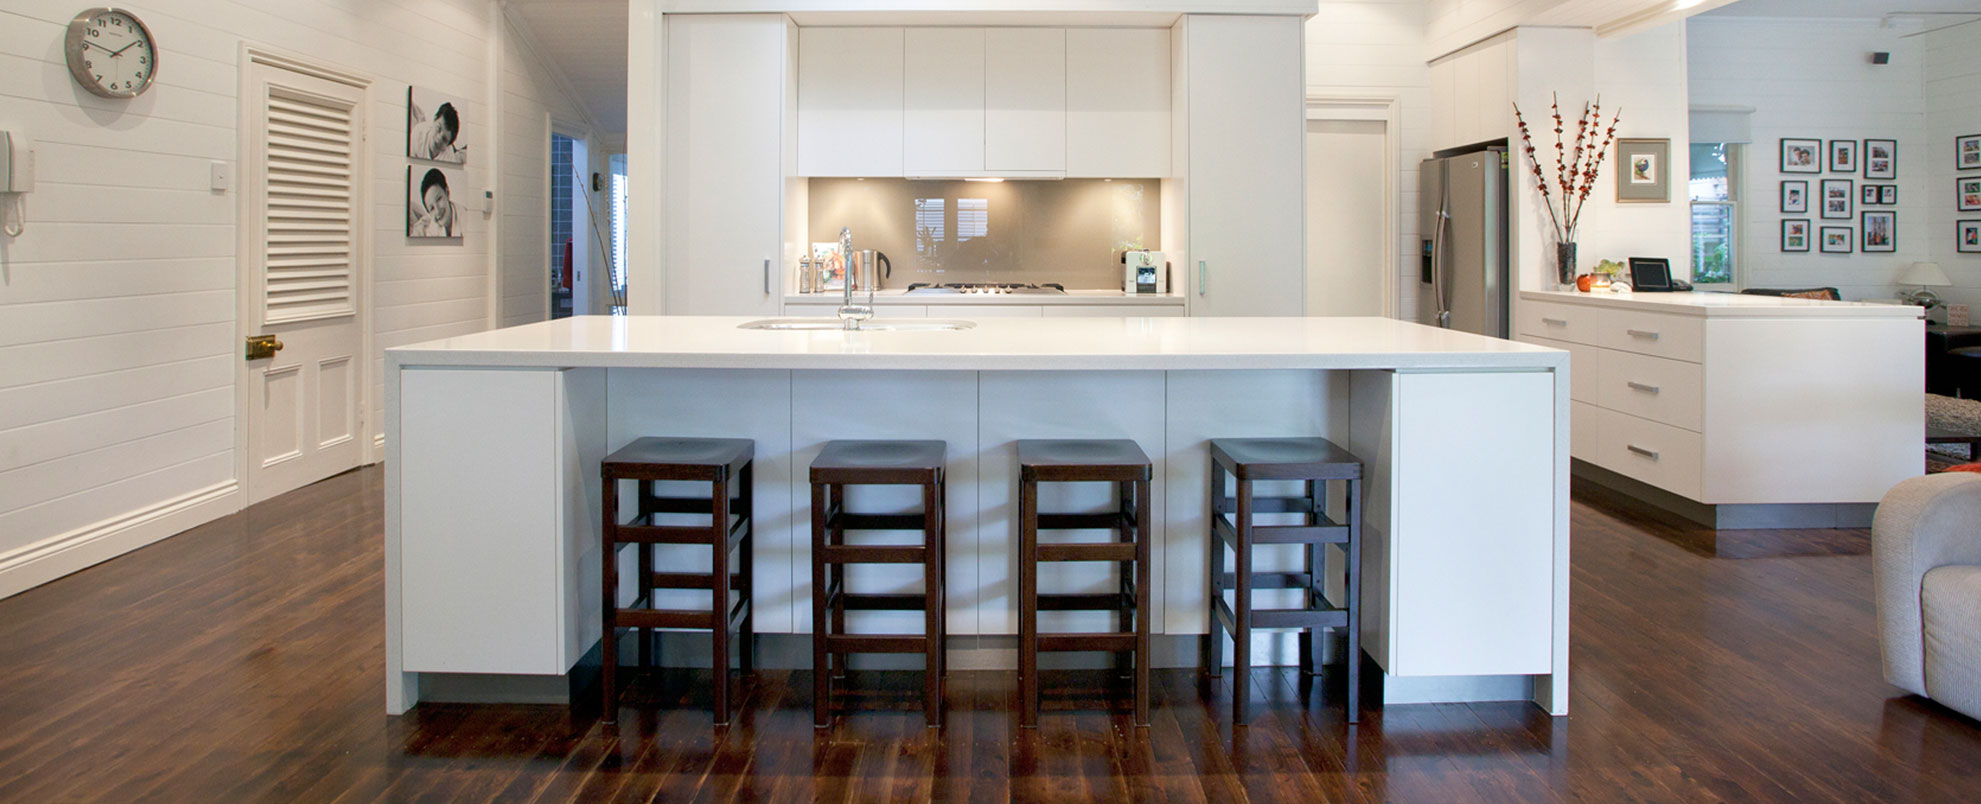 makingsfinekitchens com kitchen and bath remodeling Brisbane s leading kitchen bathroom and joinery specialists